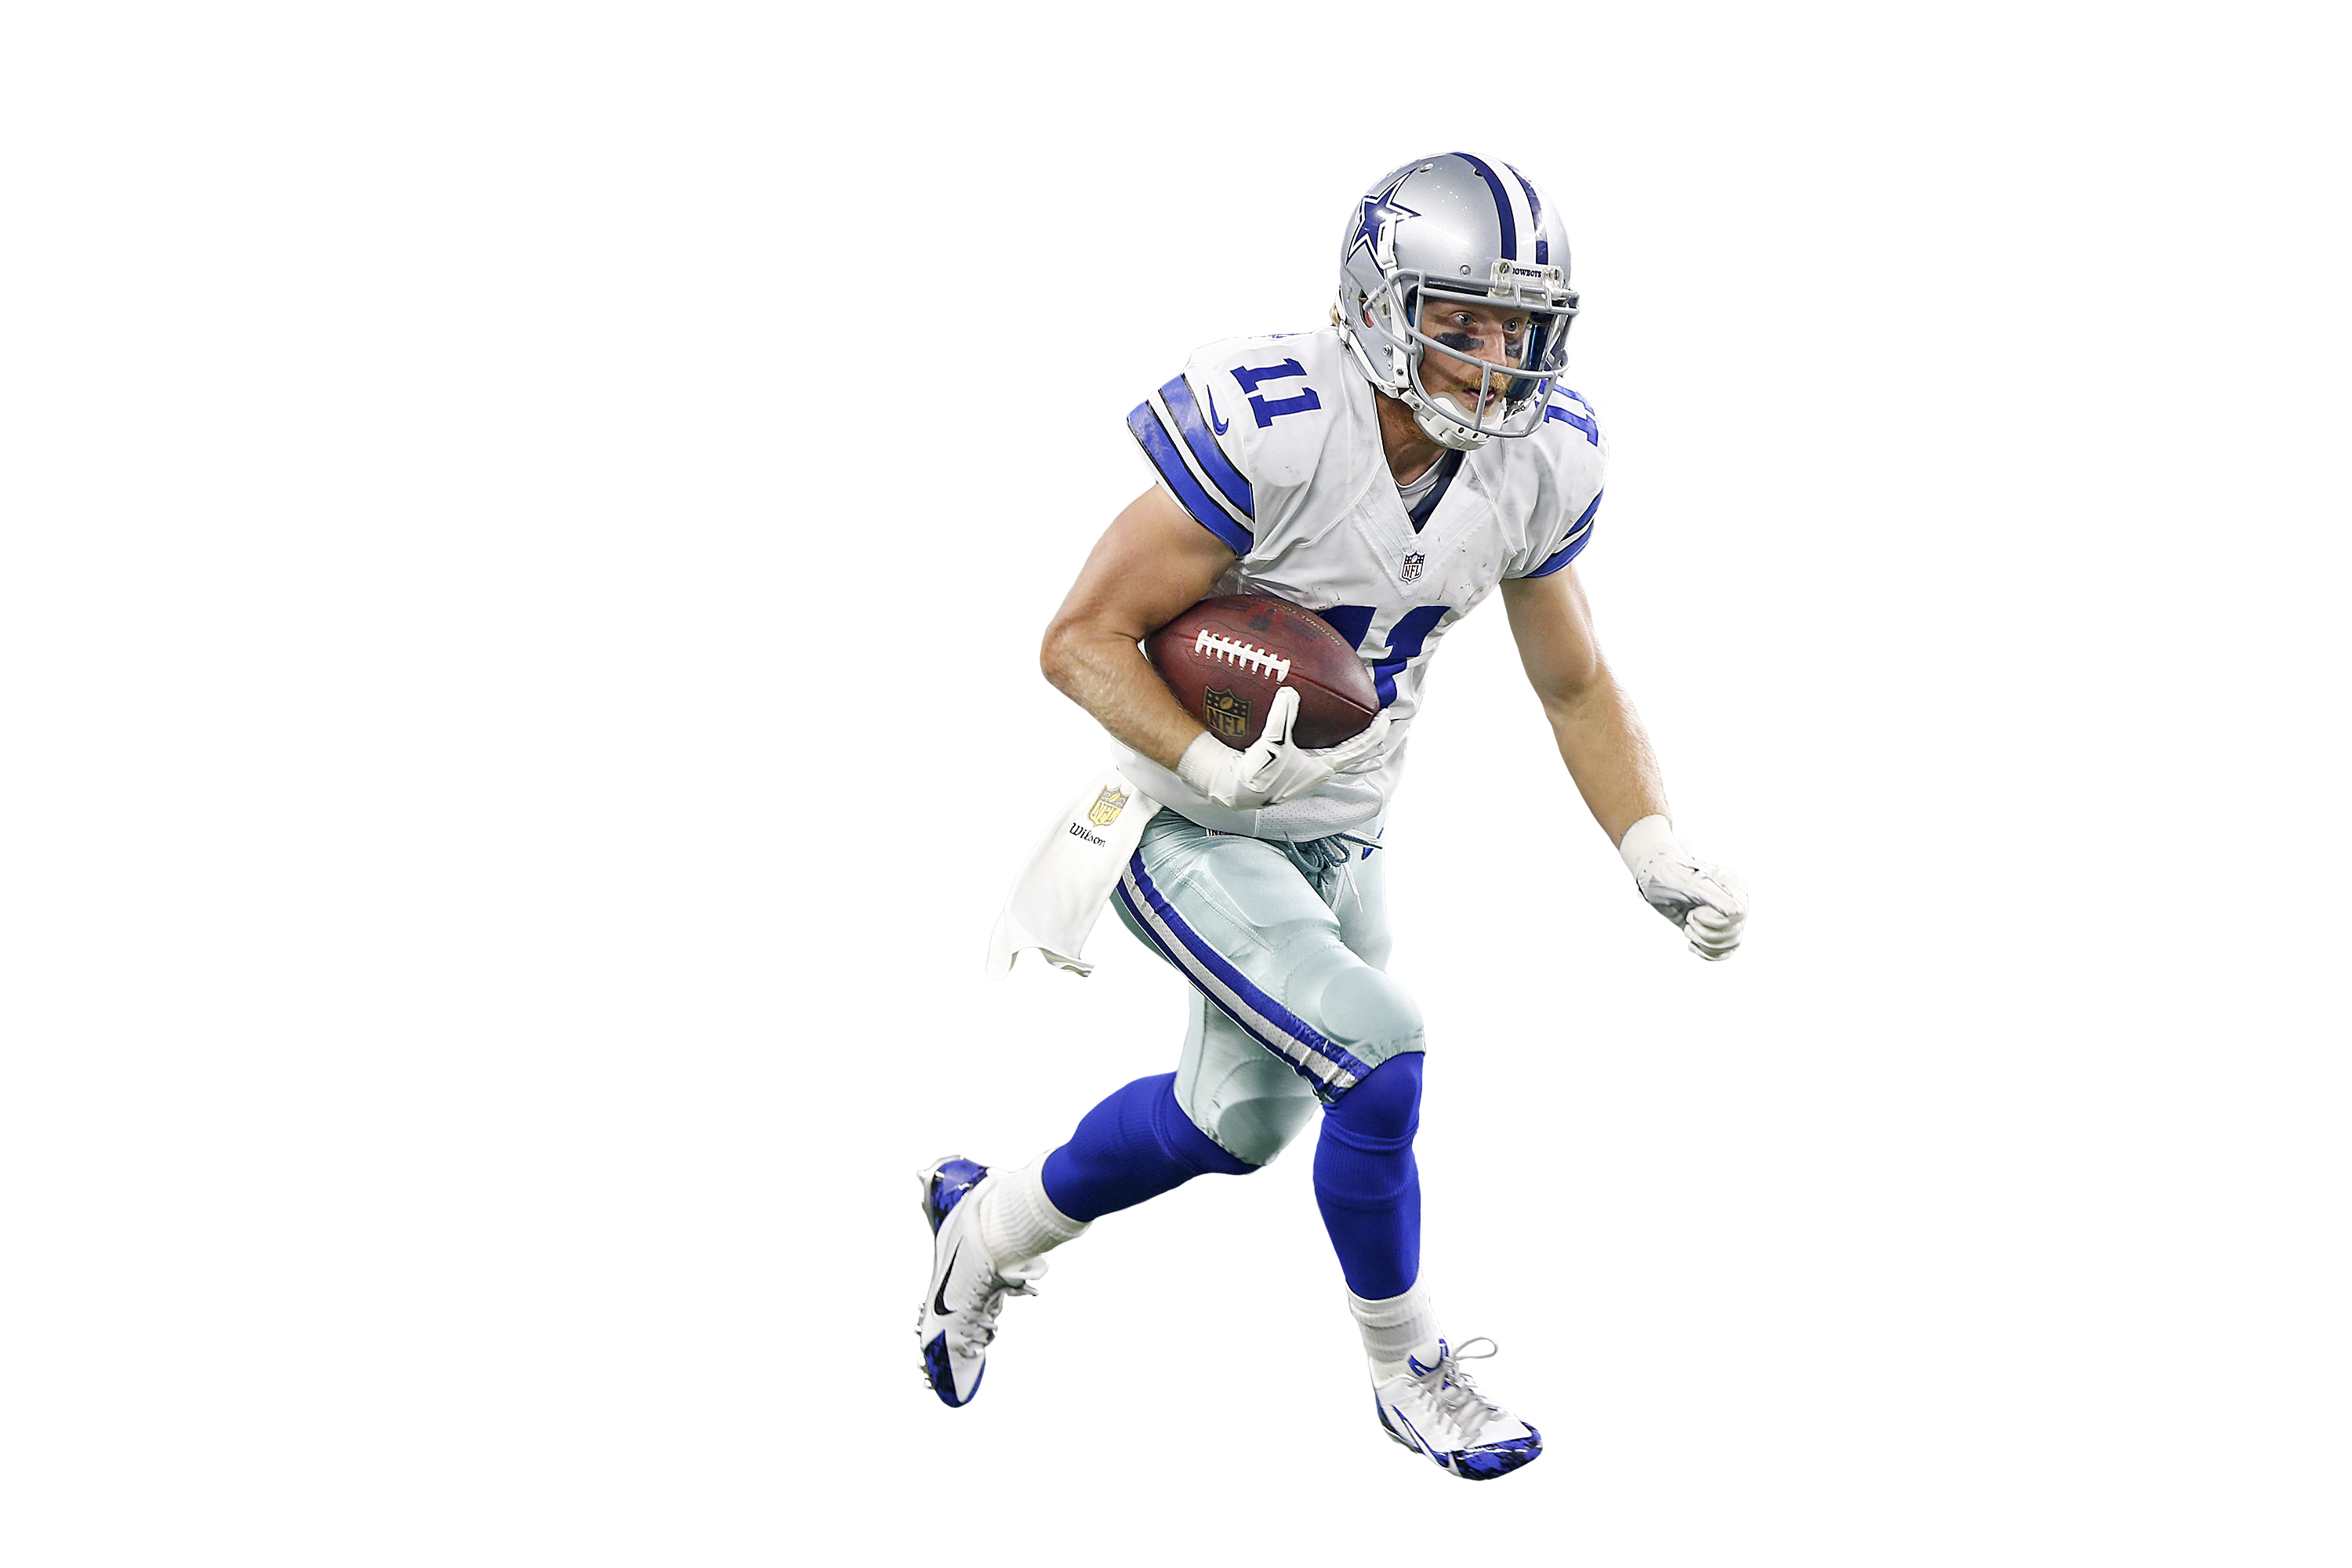 Hq png images pluspng. Dallas cowboys clipart transparent